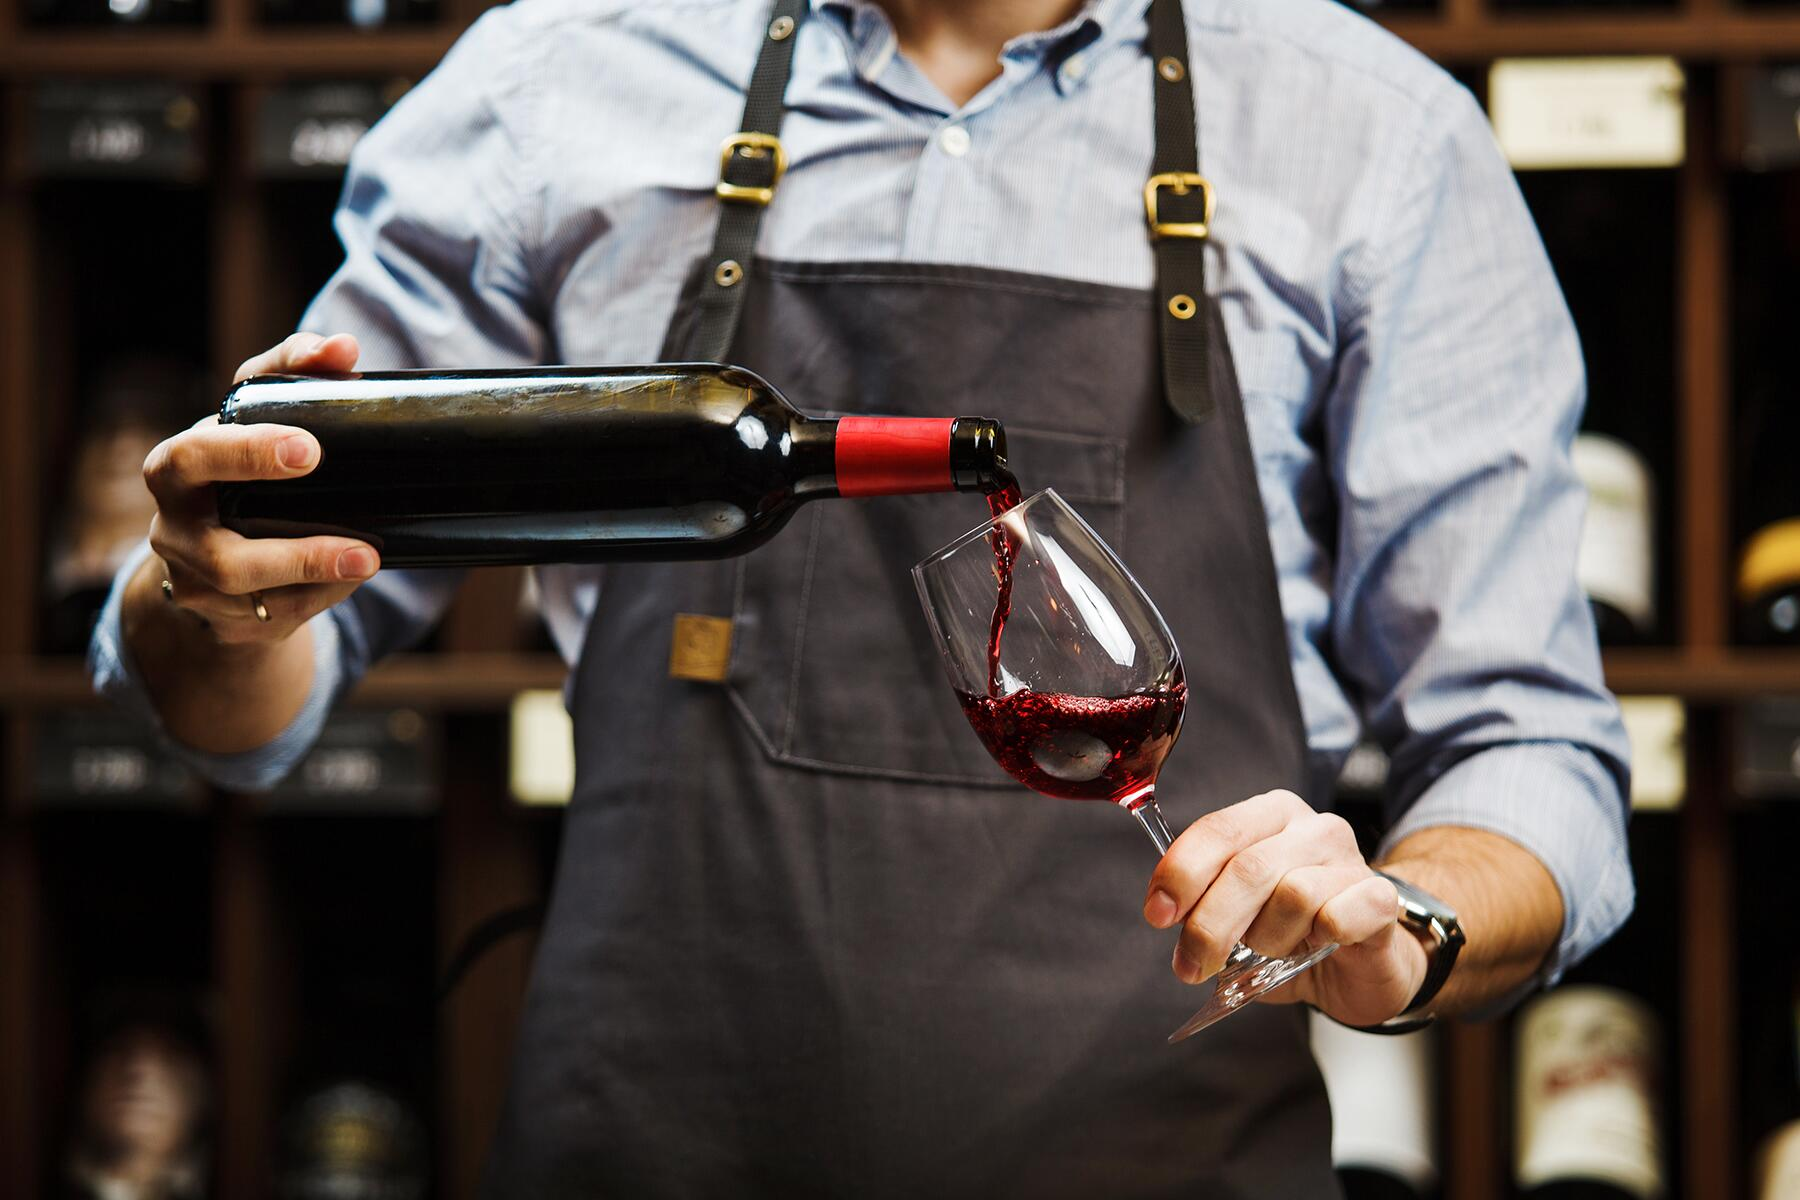 So, How Do You Become a Sommelier Anyway?